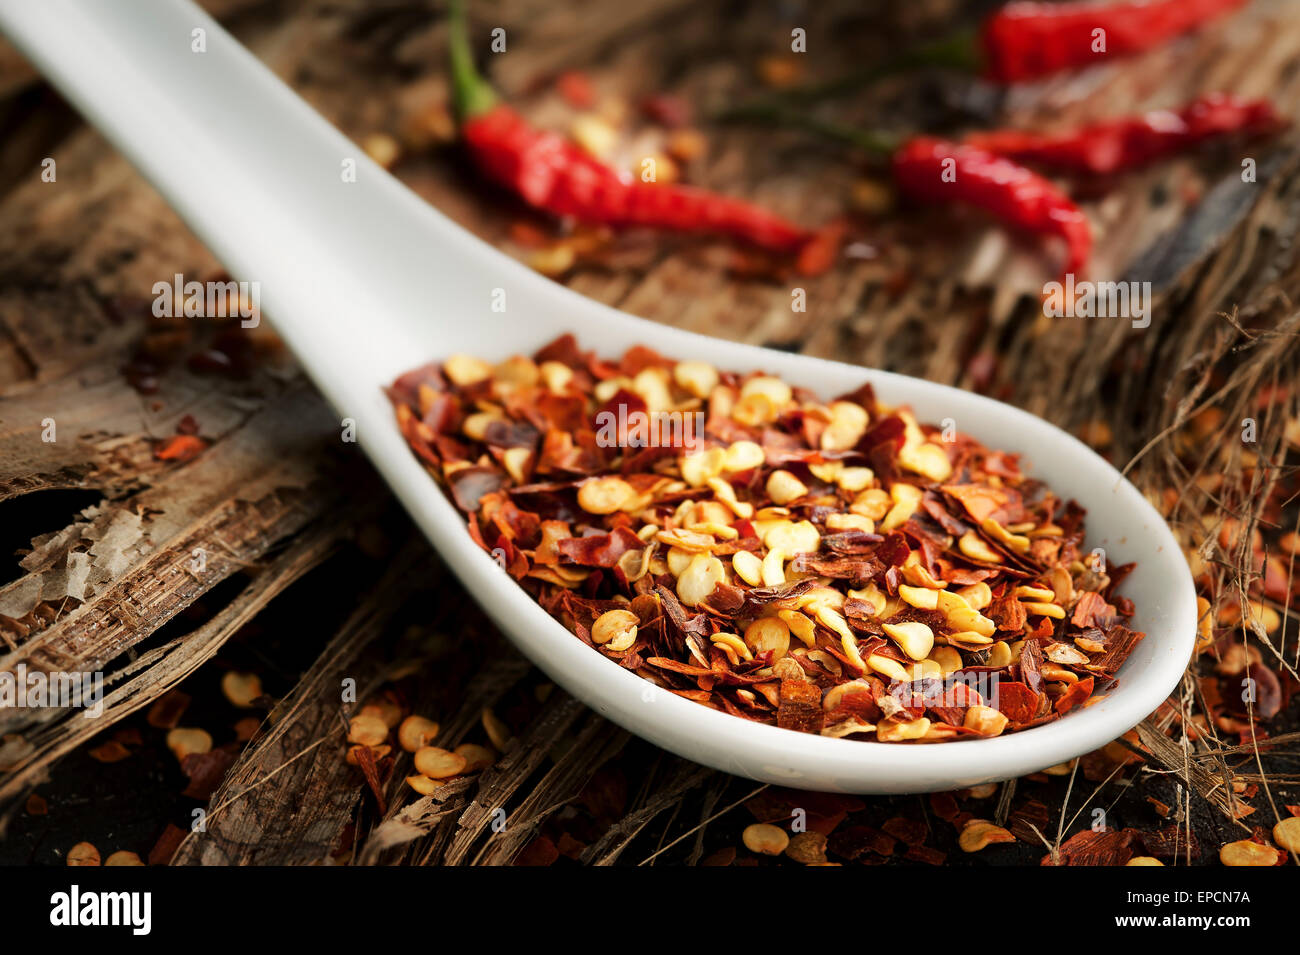 Crushed Chilli Spice in a white spoon on wood - Stock Image